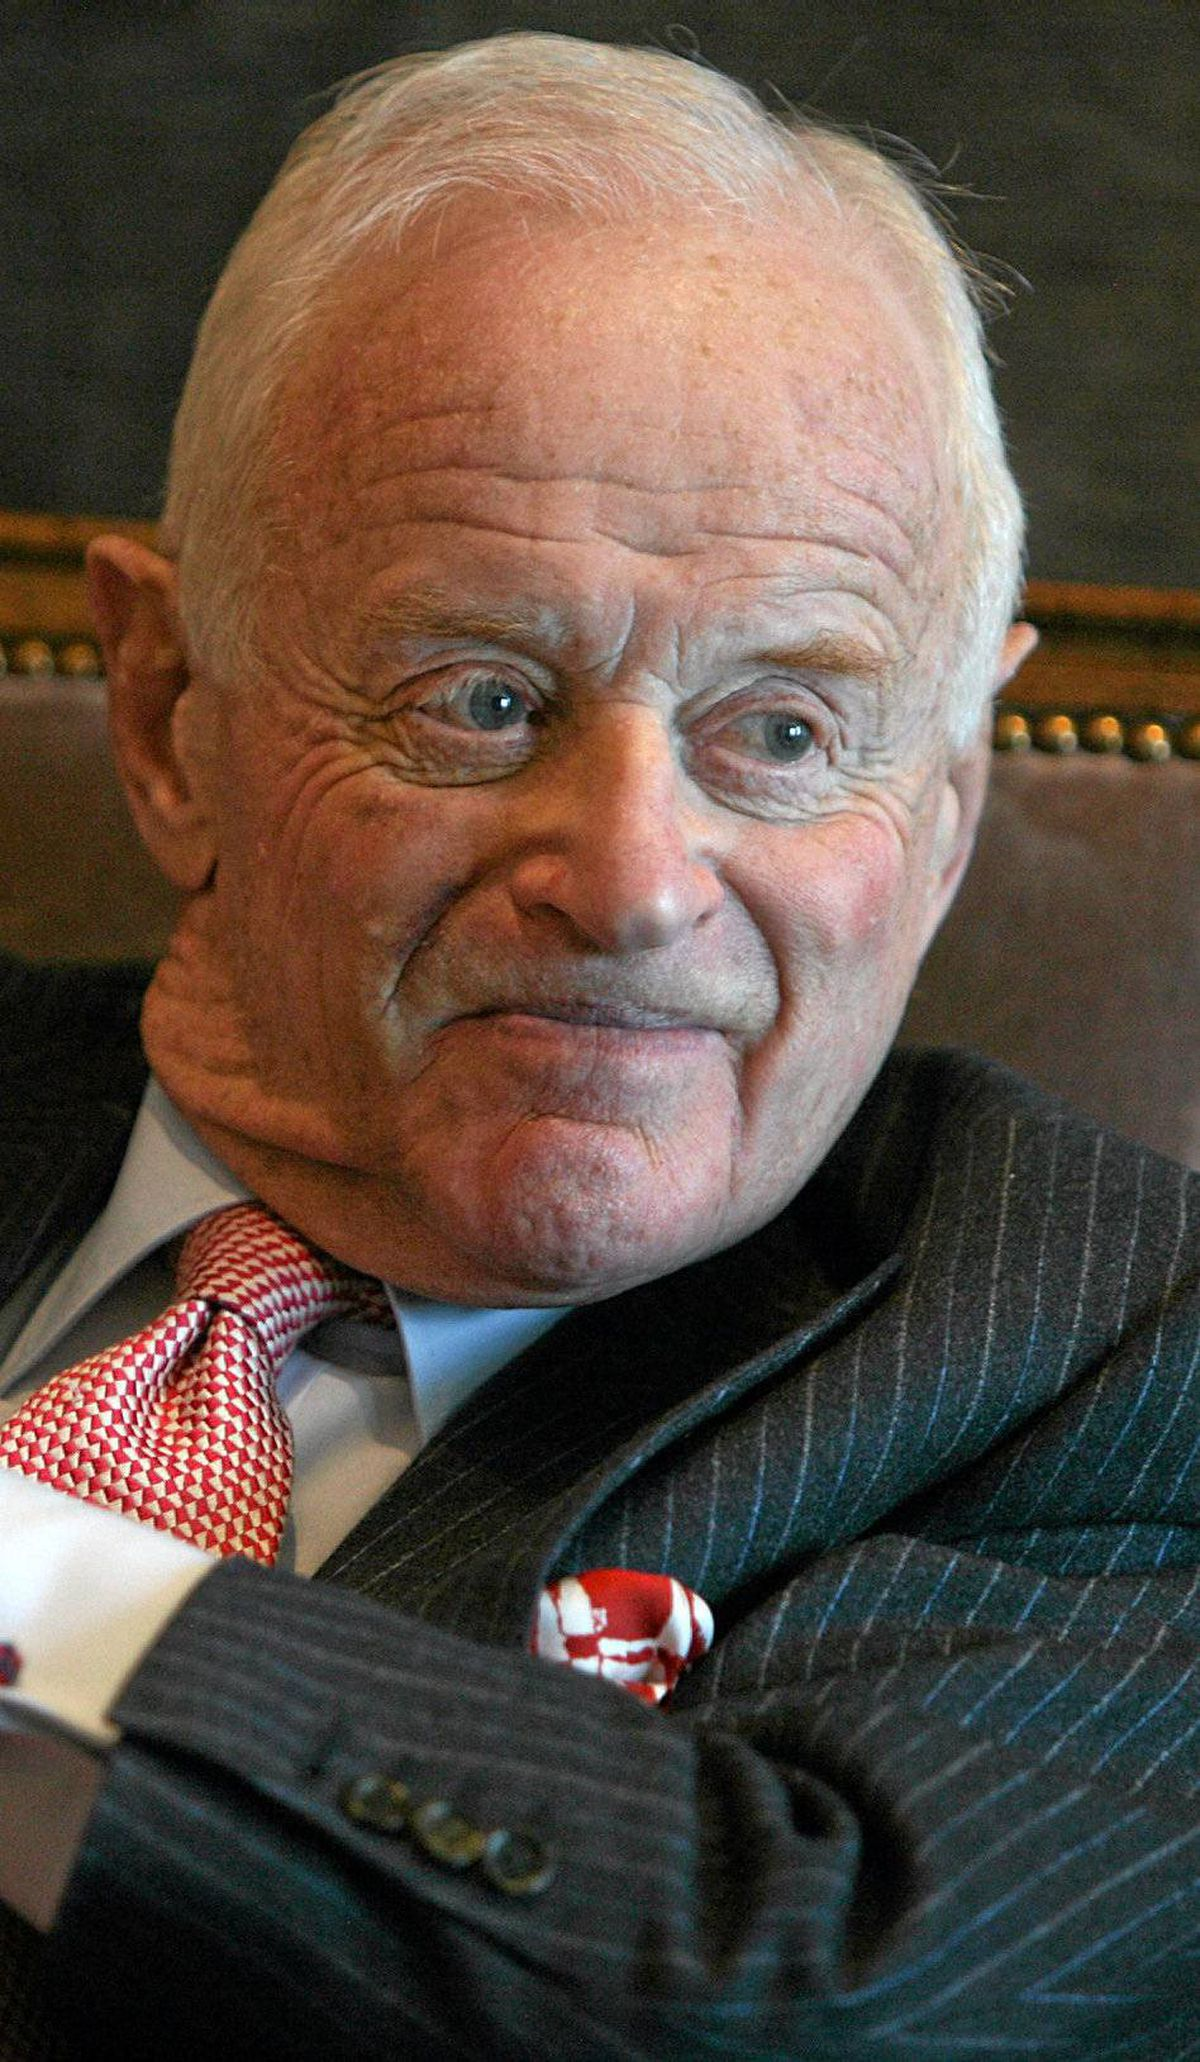 <h2>Peter Munk</h2> Day job? Chairman and founder of Barrick Gold Corp. Born? Budapest, Hungary How old were you when you moved to Canada? 19 First job in Canada? Picking tobacco leaves in Delhi, Ont. Net worth? $350-million Street cred? Companion of the Order of Canada Signs of promise? Built a fledgling oil and gas company into the world's largest gold-mining corporation. Do you give back? Founded the Peter Munk Charitable Foundation, dispersing about $100-million to date. Donated $43-million to Toronto General Hospital and $50.9-million to the University of Toronto.